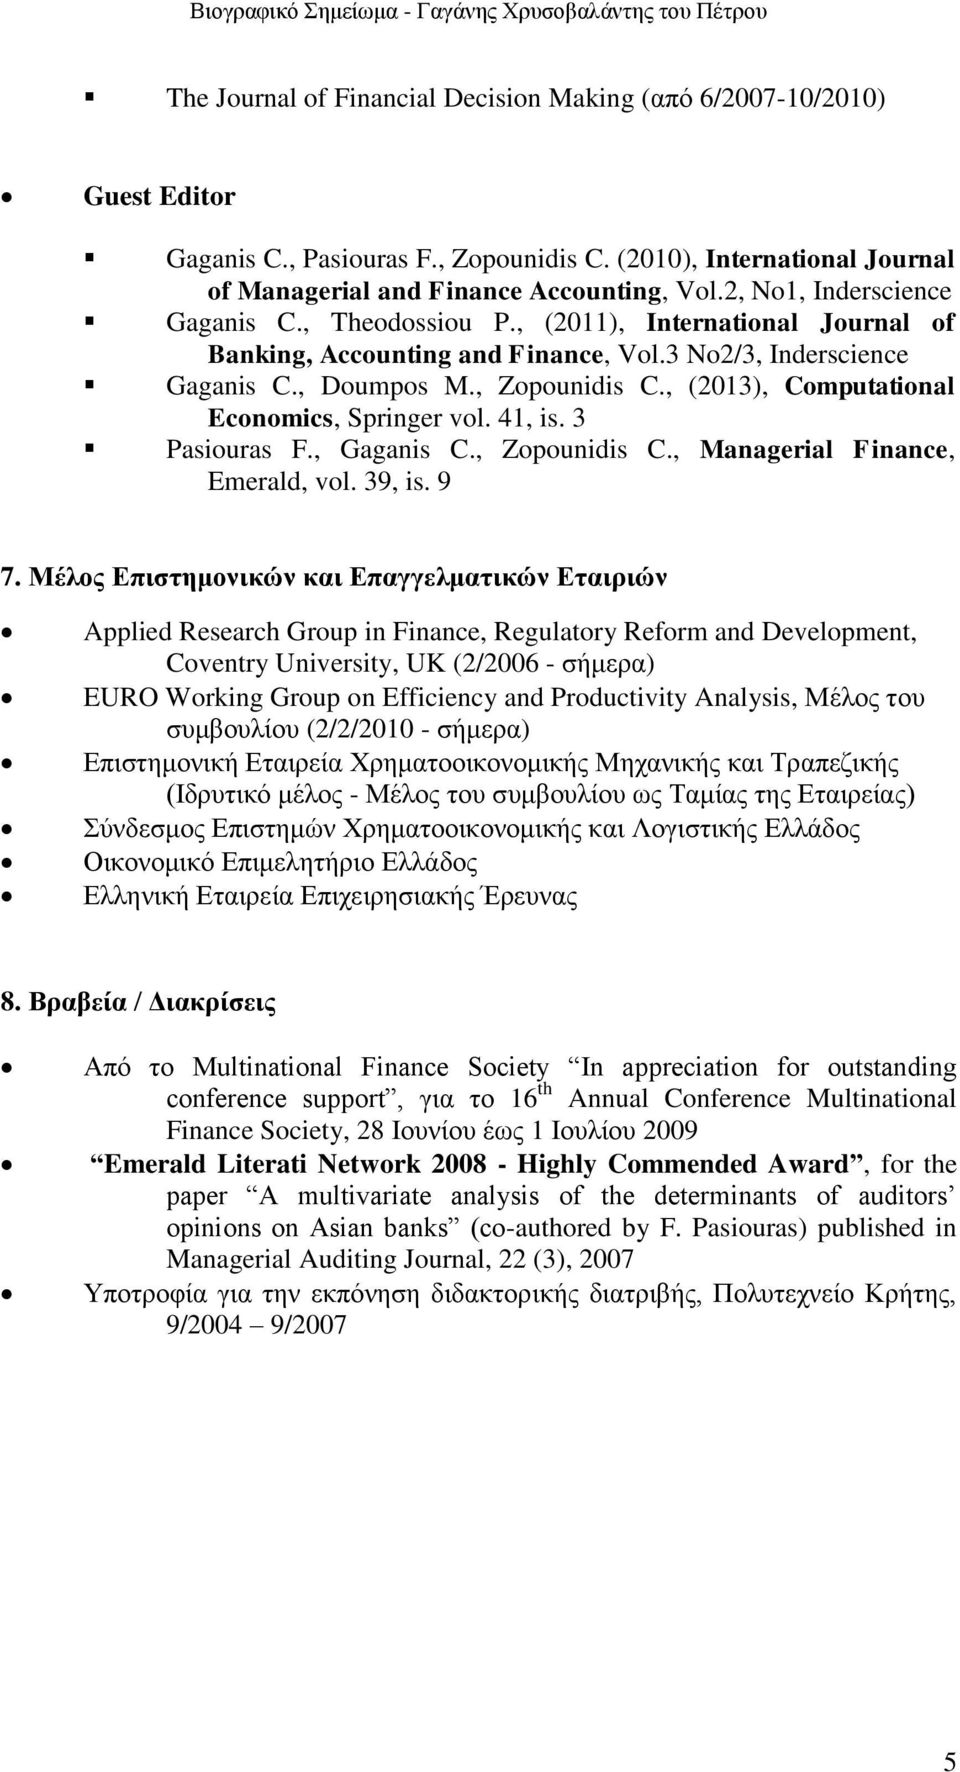 , (2013), Computational Economics, Springer vol. 41, is. 3 Pasiouras F., Gaganis C., Zopounidis C., Managerial Finance, Emerald, vol. 39, is. 9 7.